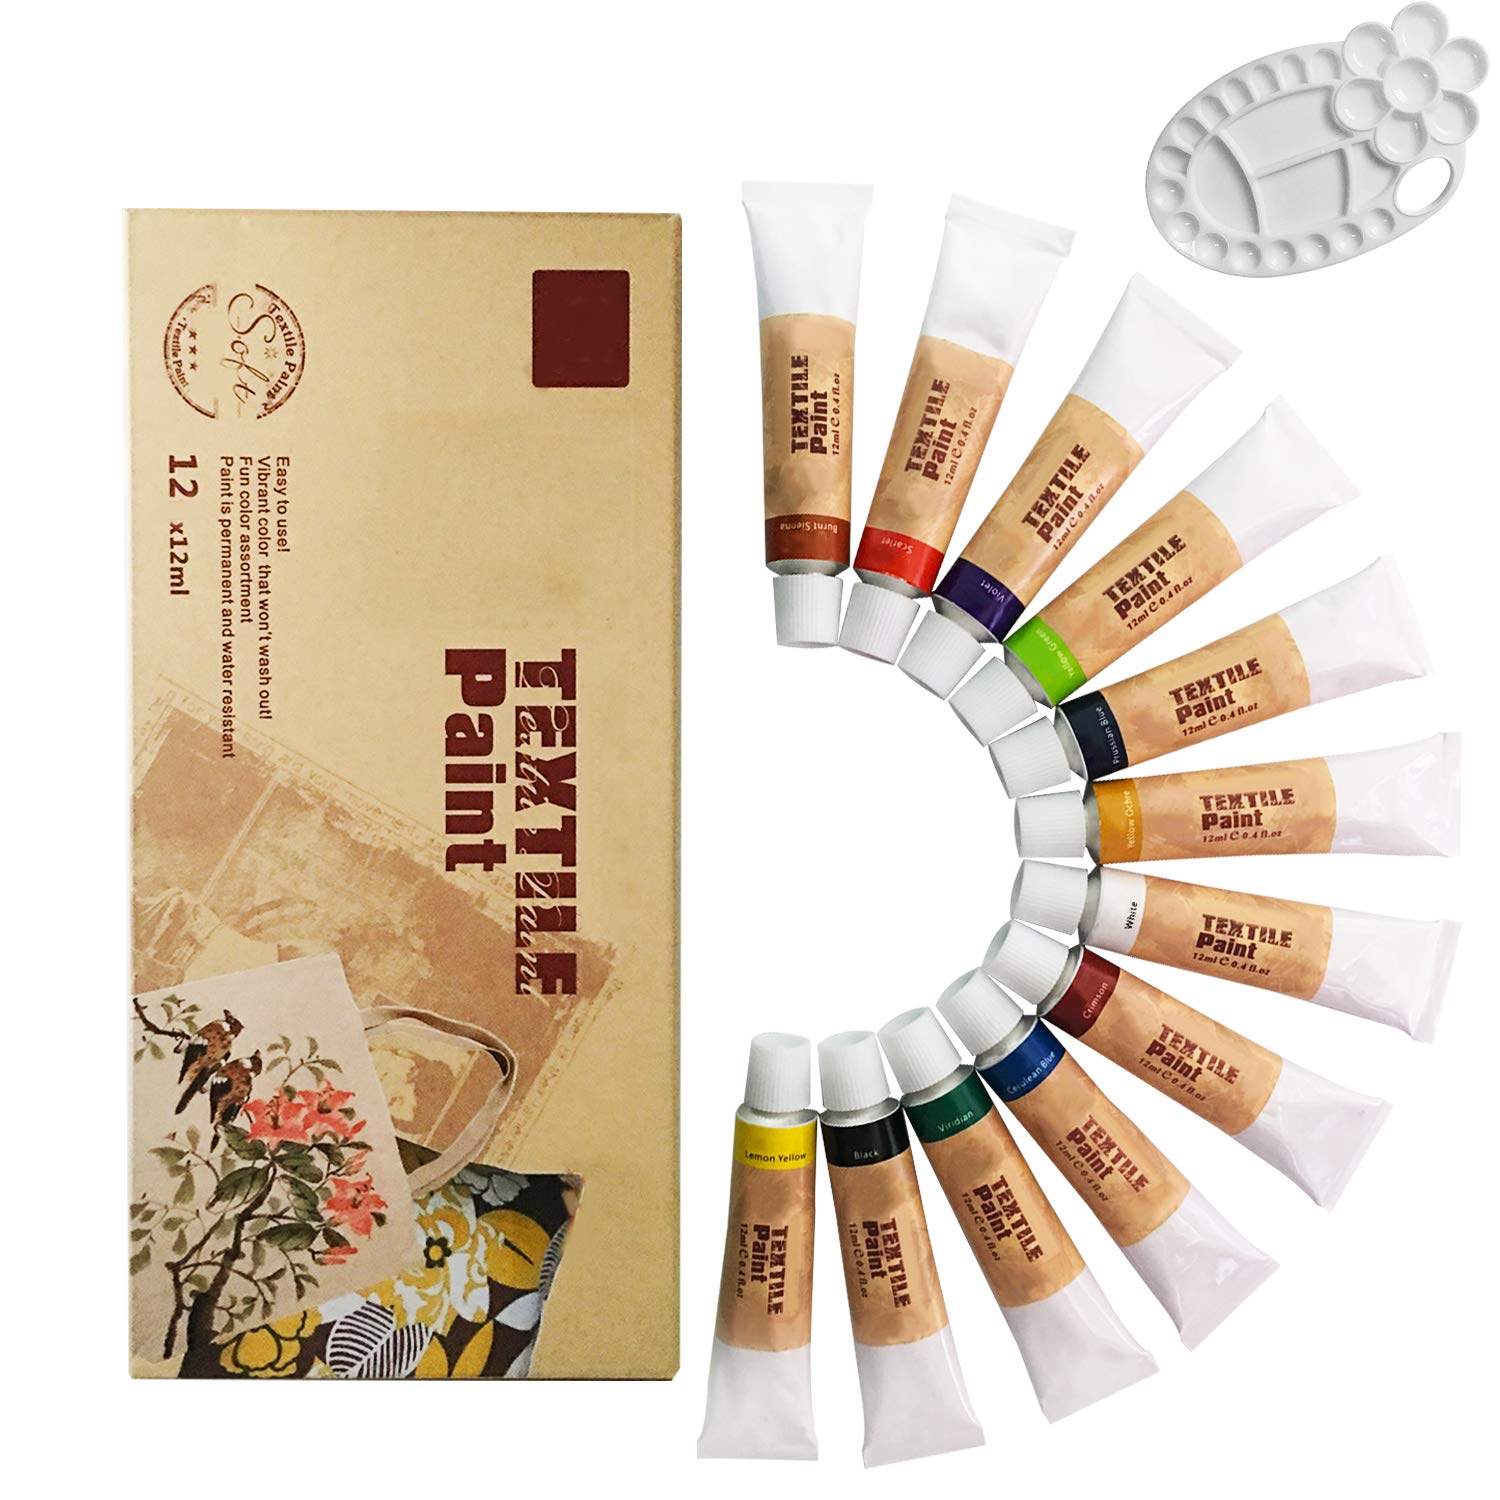 Lasten Fabric Paint Set With Palette, Permanent Textile Paint Art Dye for Fabric Canvas Wood Ceramic Glass T-shirts Clothes (12 colors X 0.4 fl.oz) Lasten-US